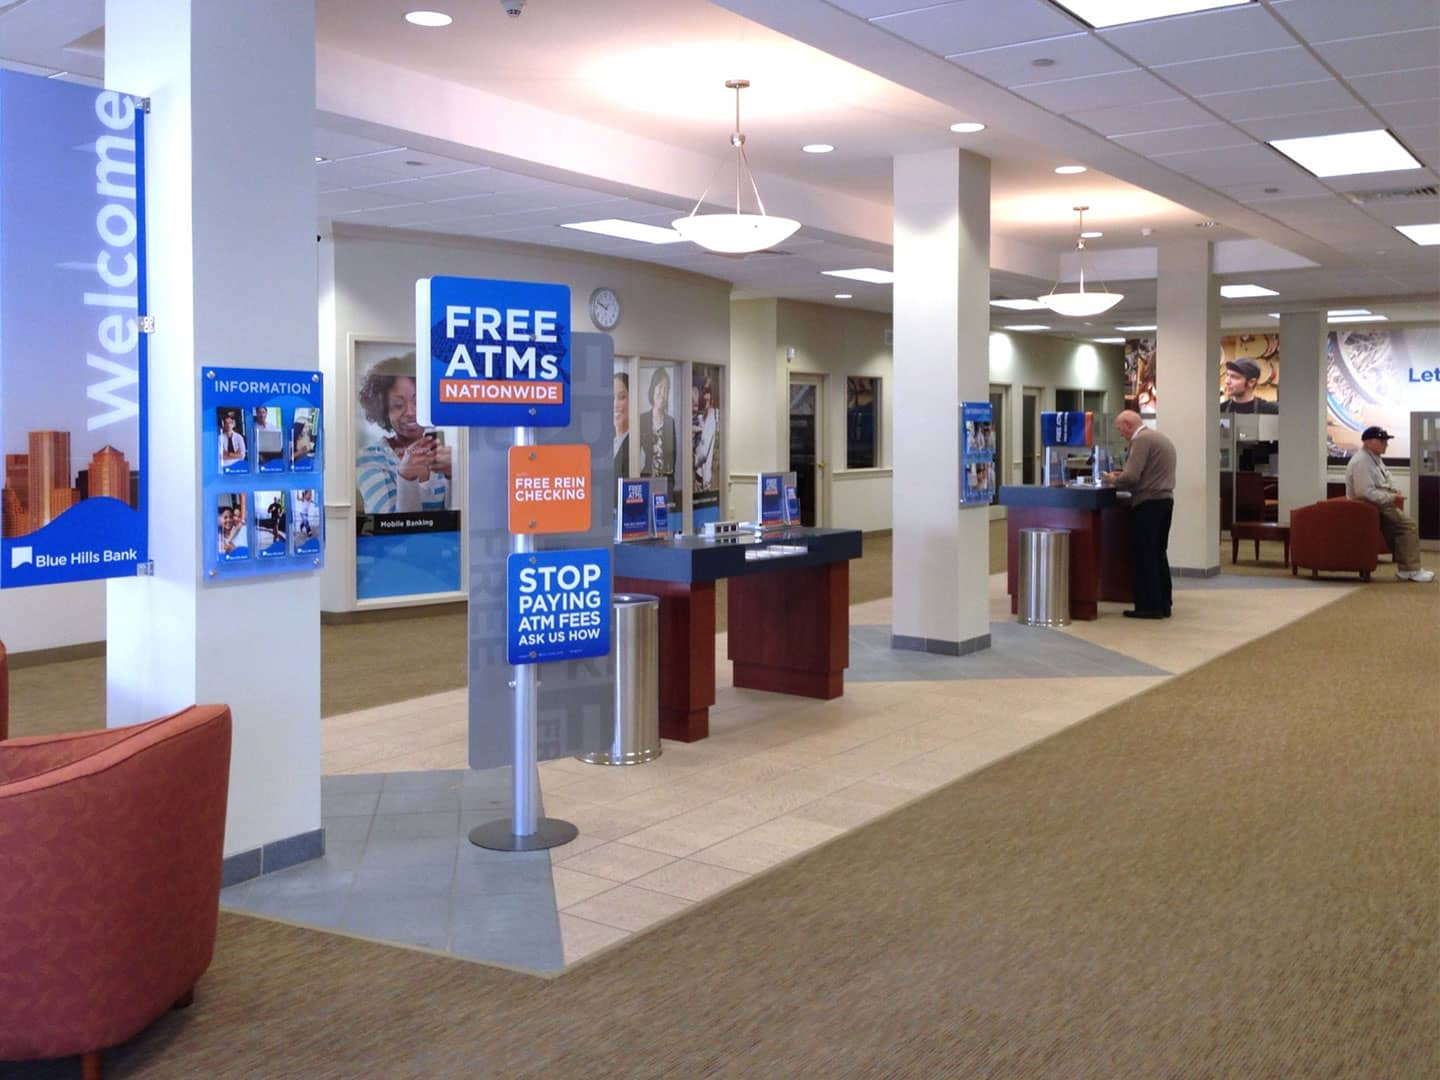 Interior Signage at Blue Hills Bank Lobby Area